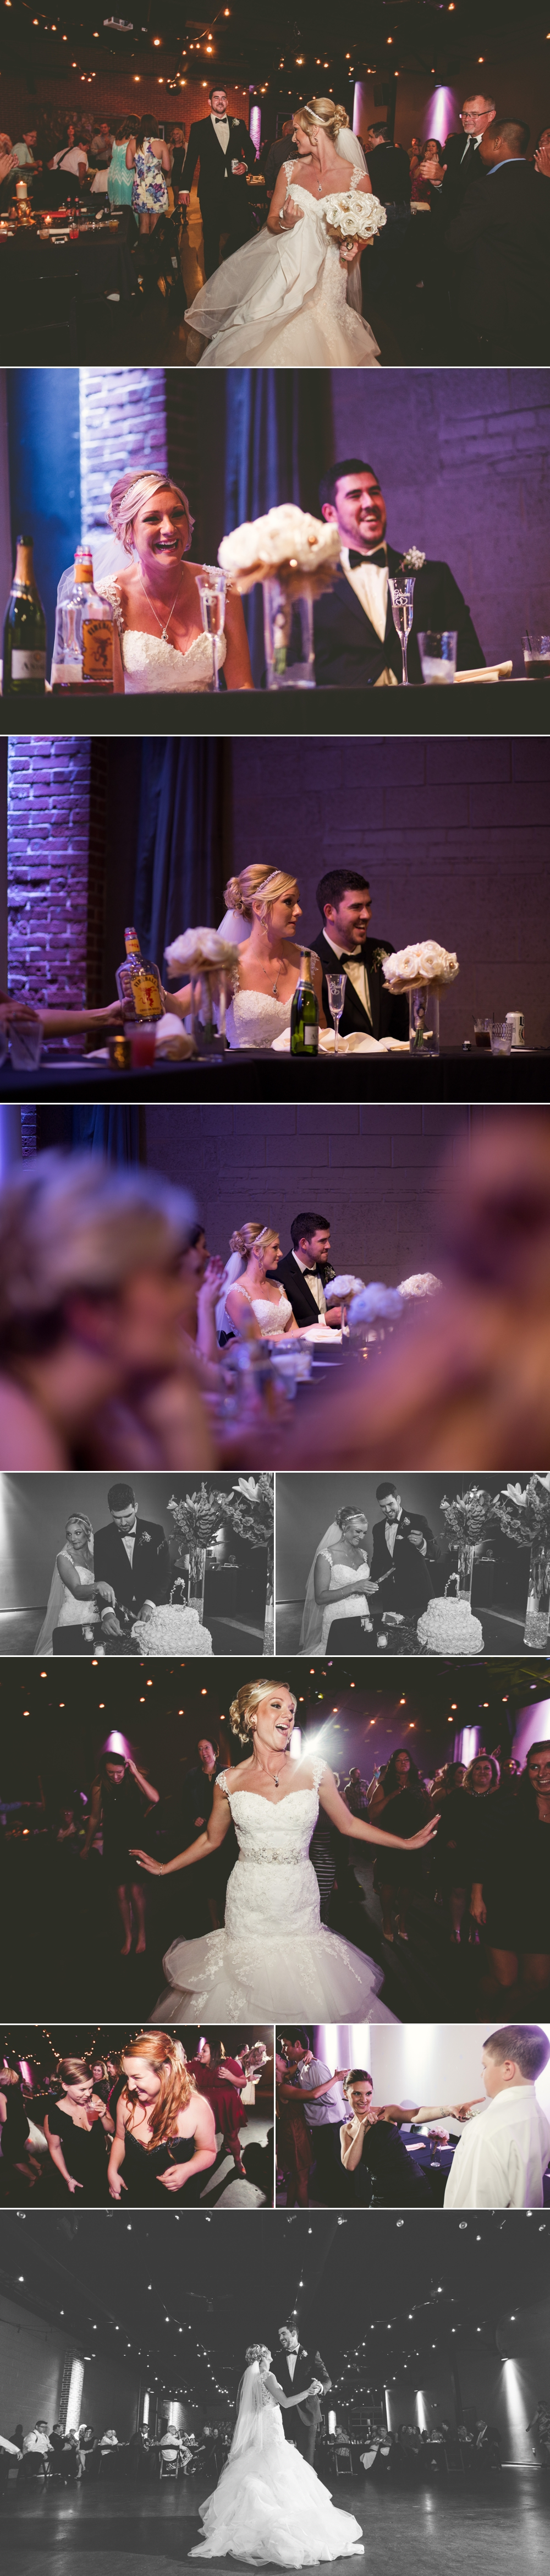 jason_domingues_photography_best_kansas_city_wedding_photographer_kc_black_on_burlington_downtown_weddings_creative_documentary_candid_experienced_3